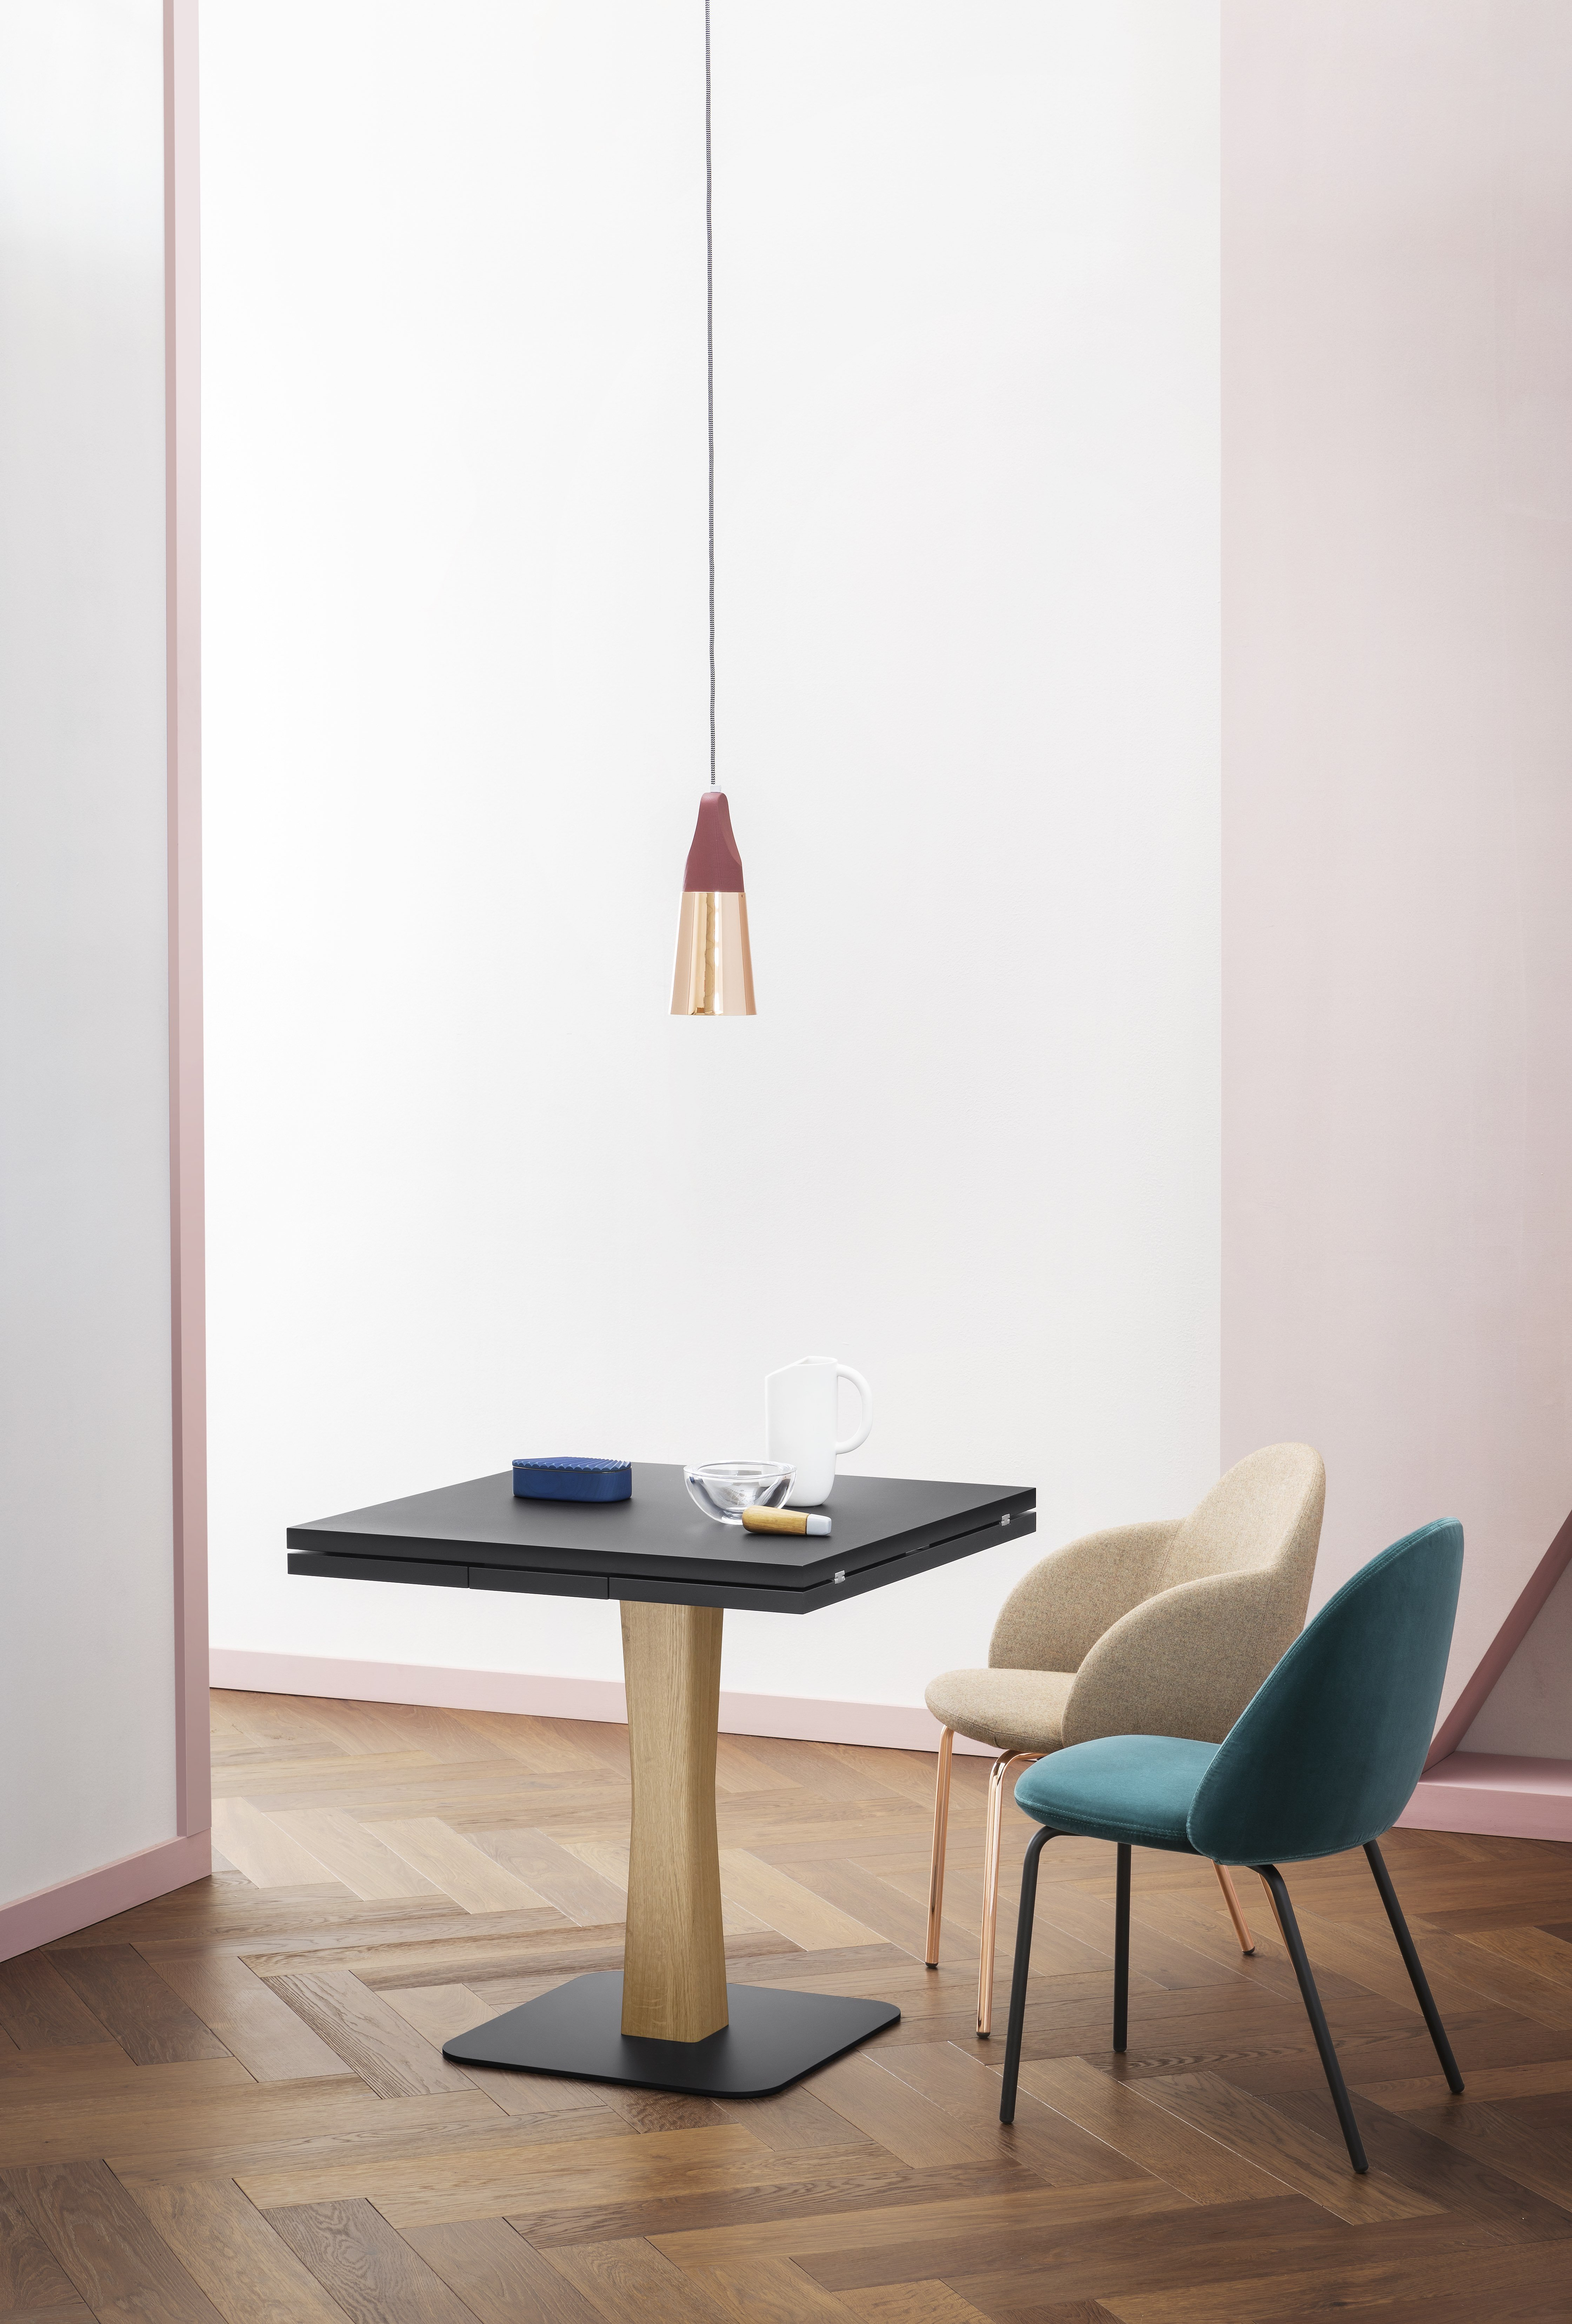 Gualtiero Table dining from Miniforms, designed by Paolo Cappello